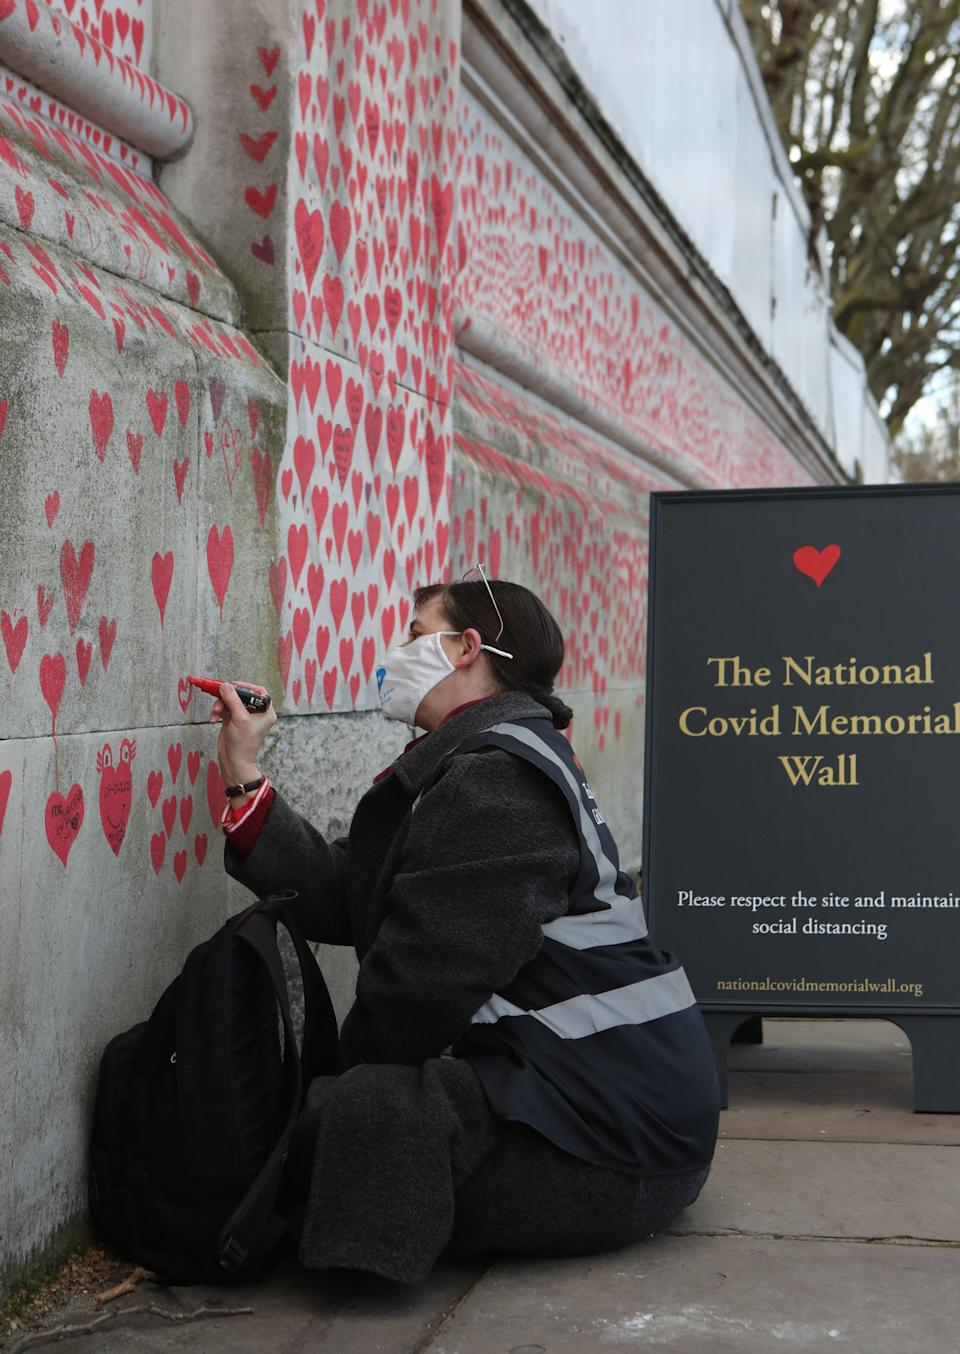 A volunteer adds hearts to the National Covid Memorial Wall in Westminster, central London